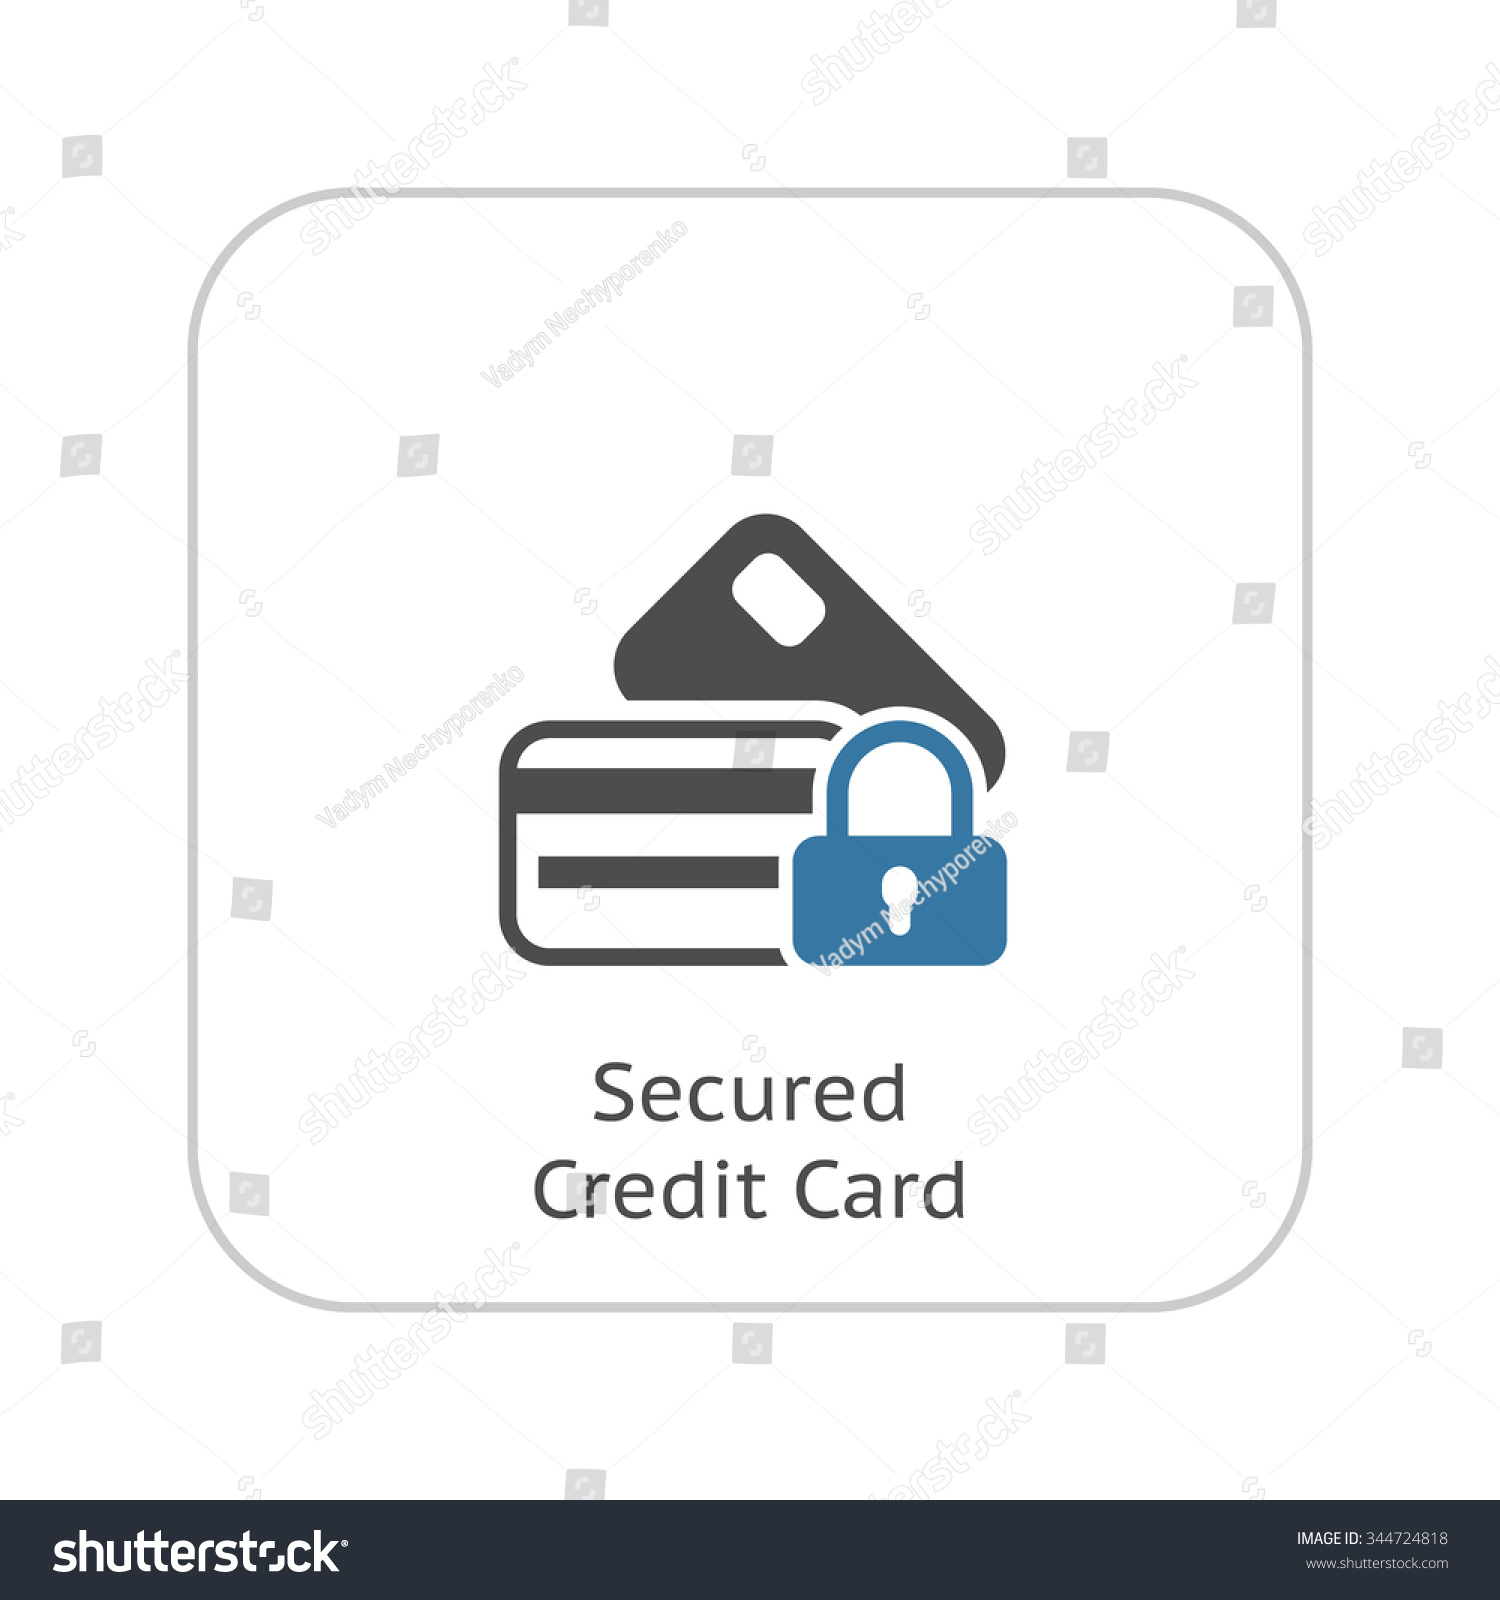 Elegant Photos Of Business Secured Credit Card - Business Cards ...